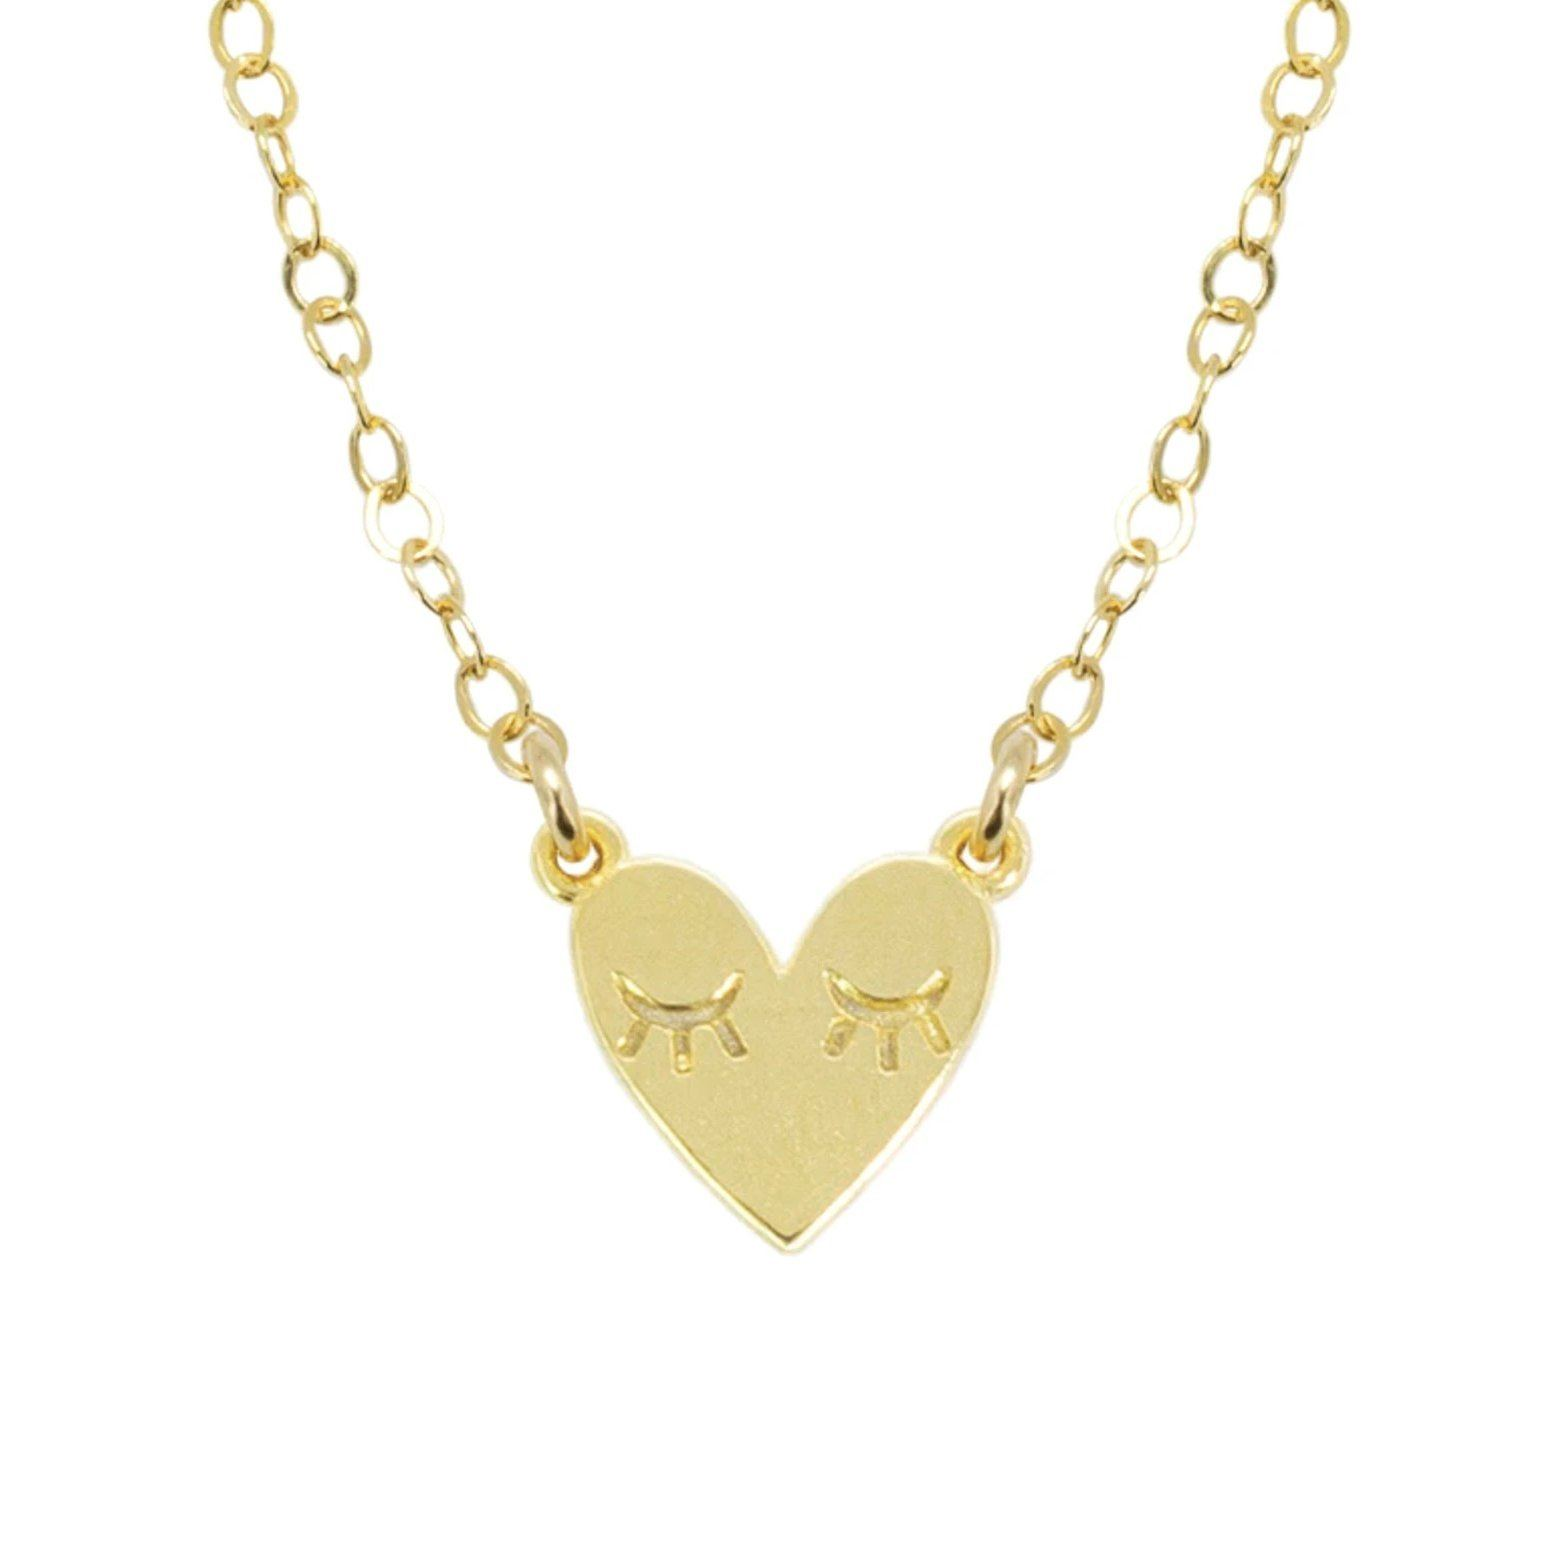 Up close image of the gold Heart Necklace pendant.